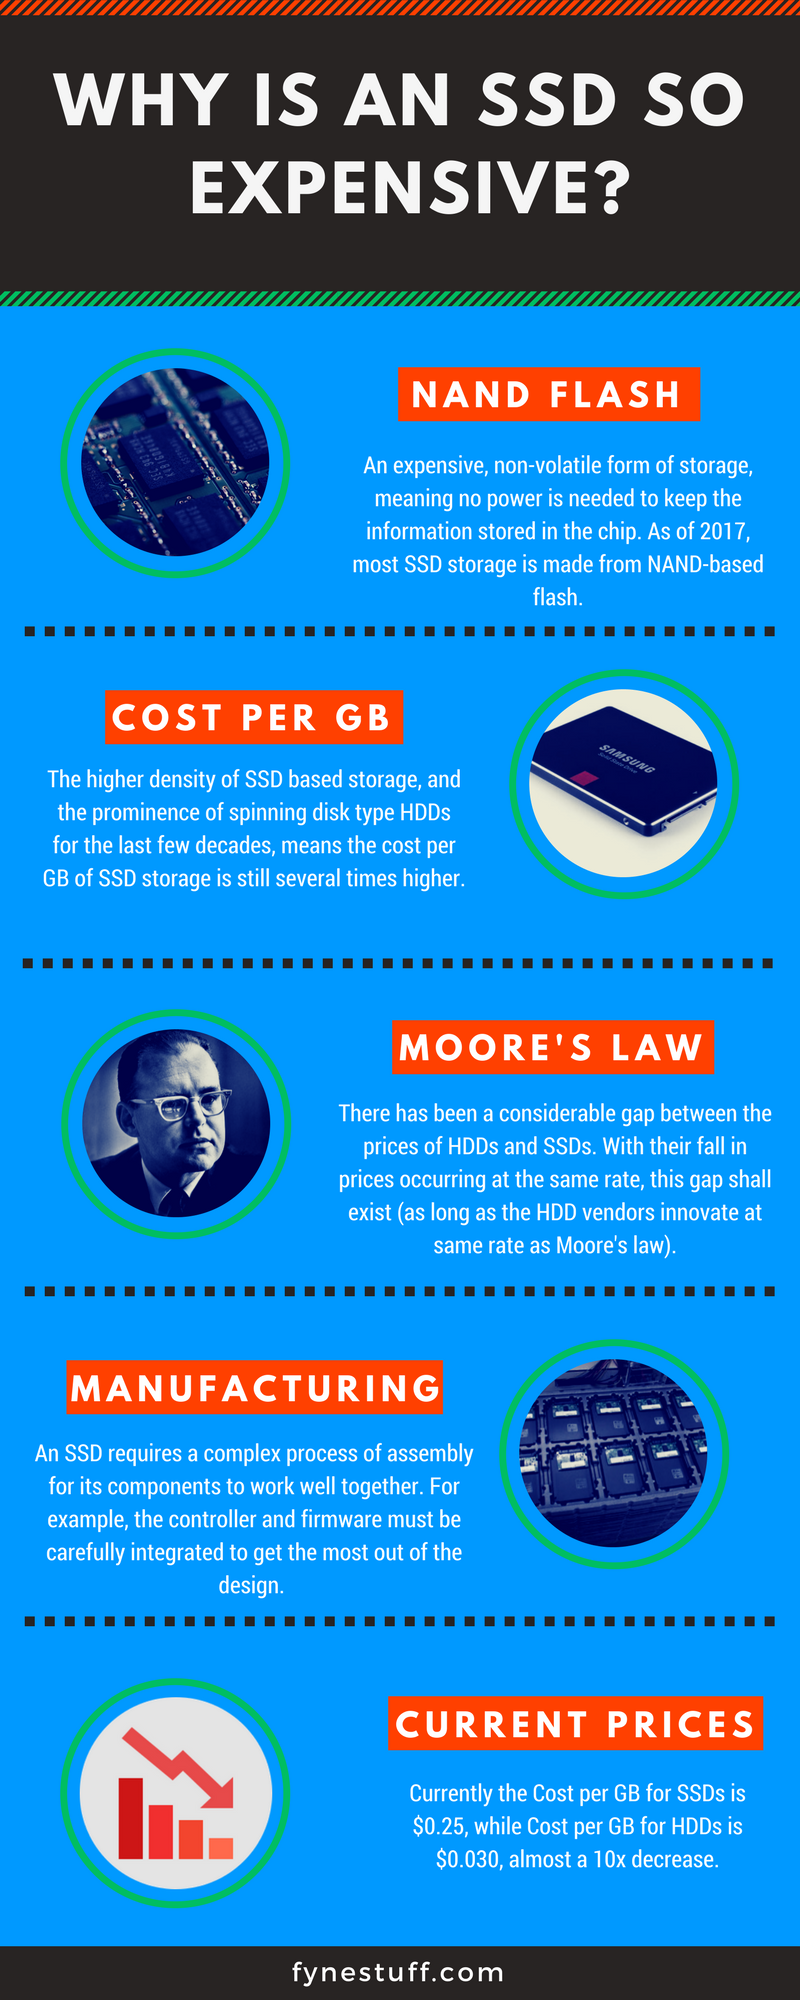 why are ssds so expensive simple infographic